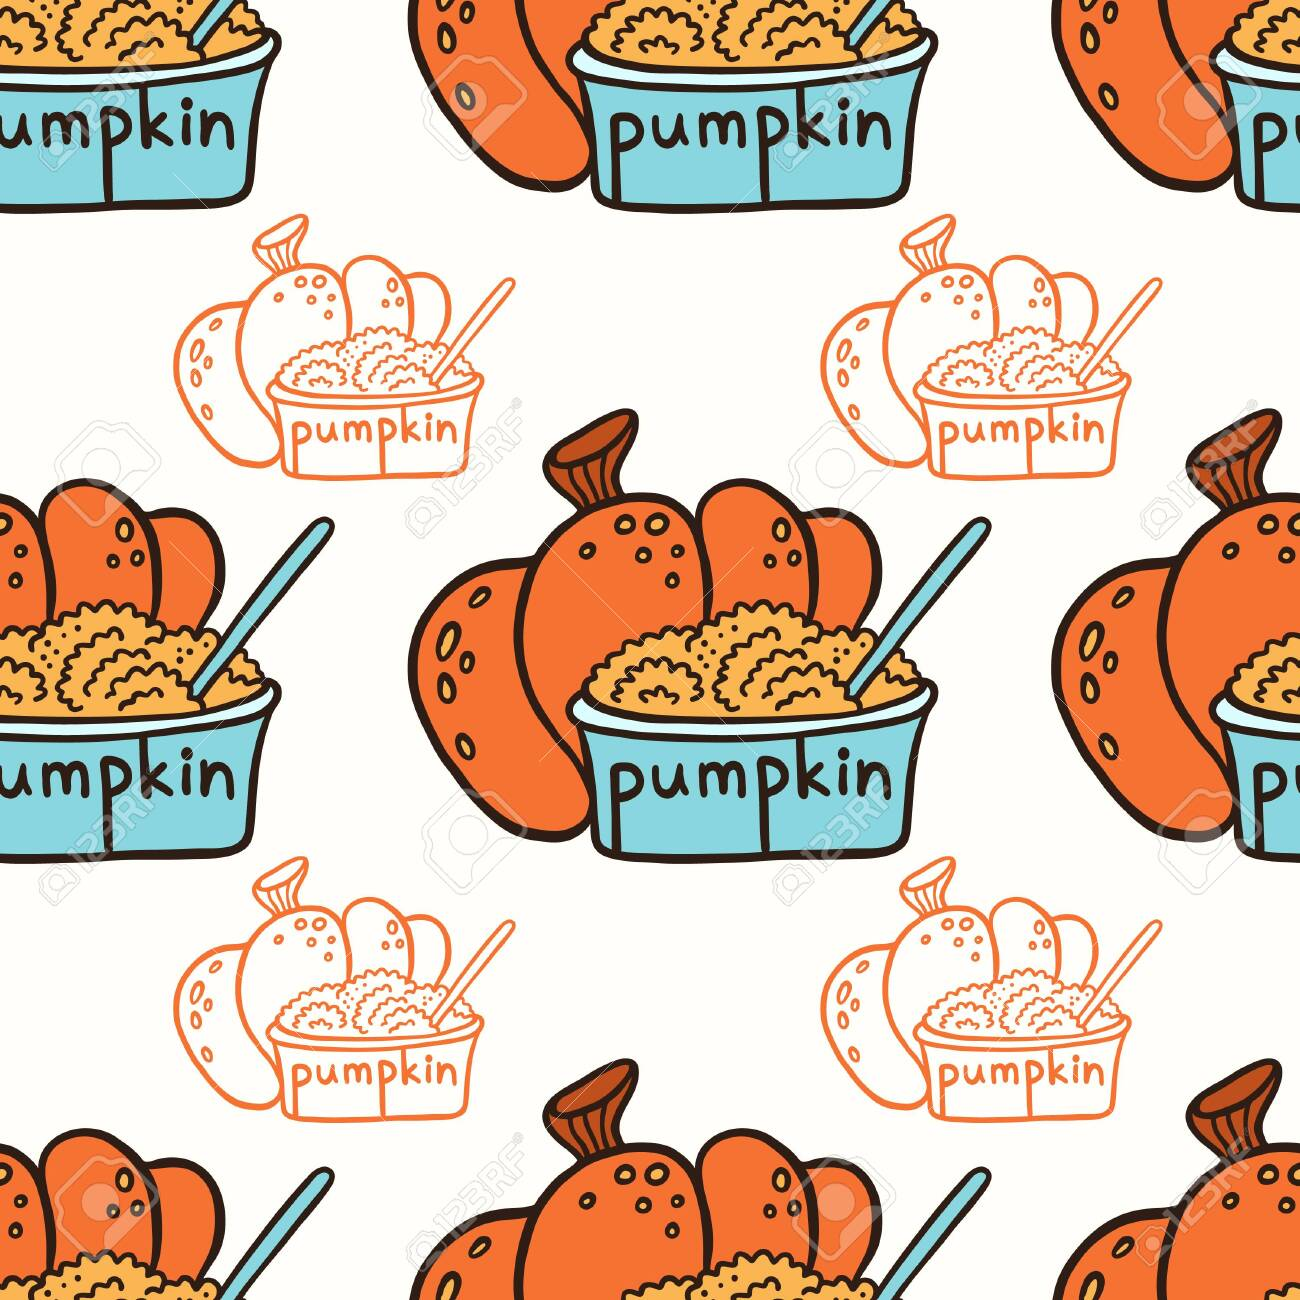 Pumpkin and pumpkin puree in a glass bowl. Doodle vector seamless pattern. - 123975651